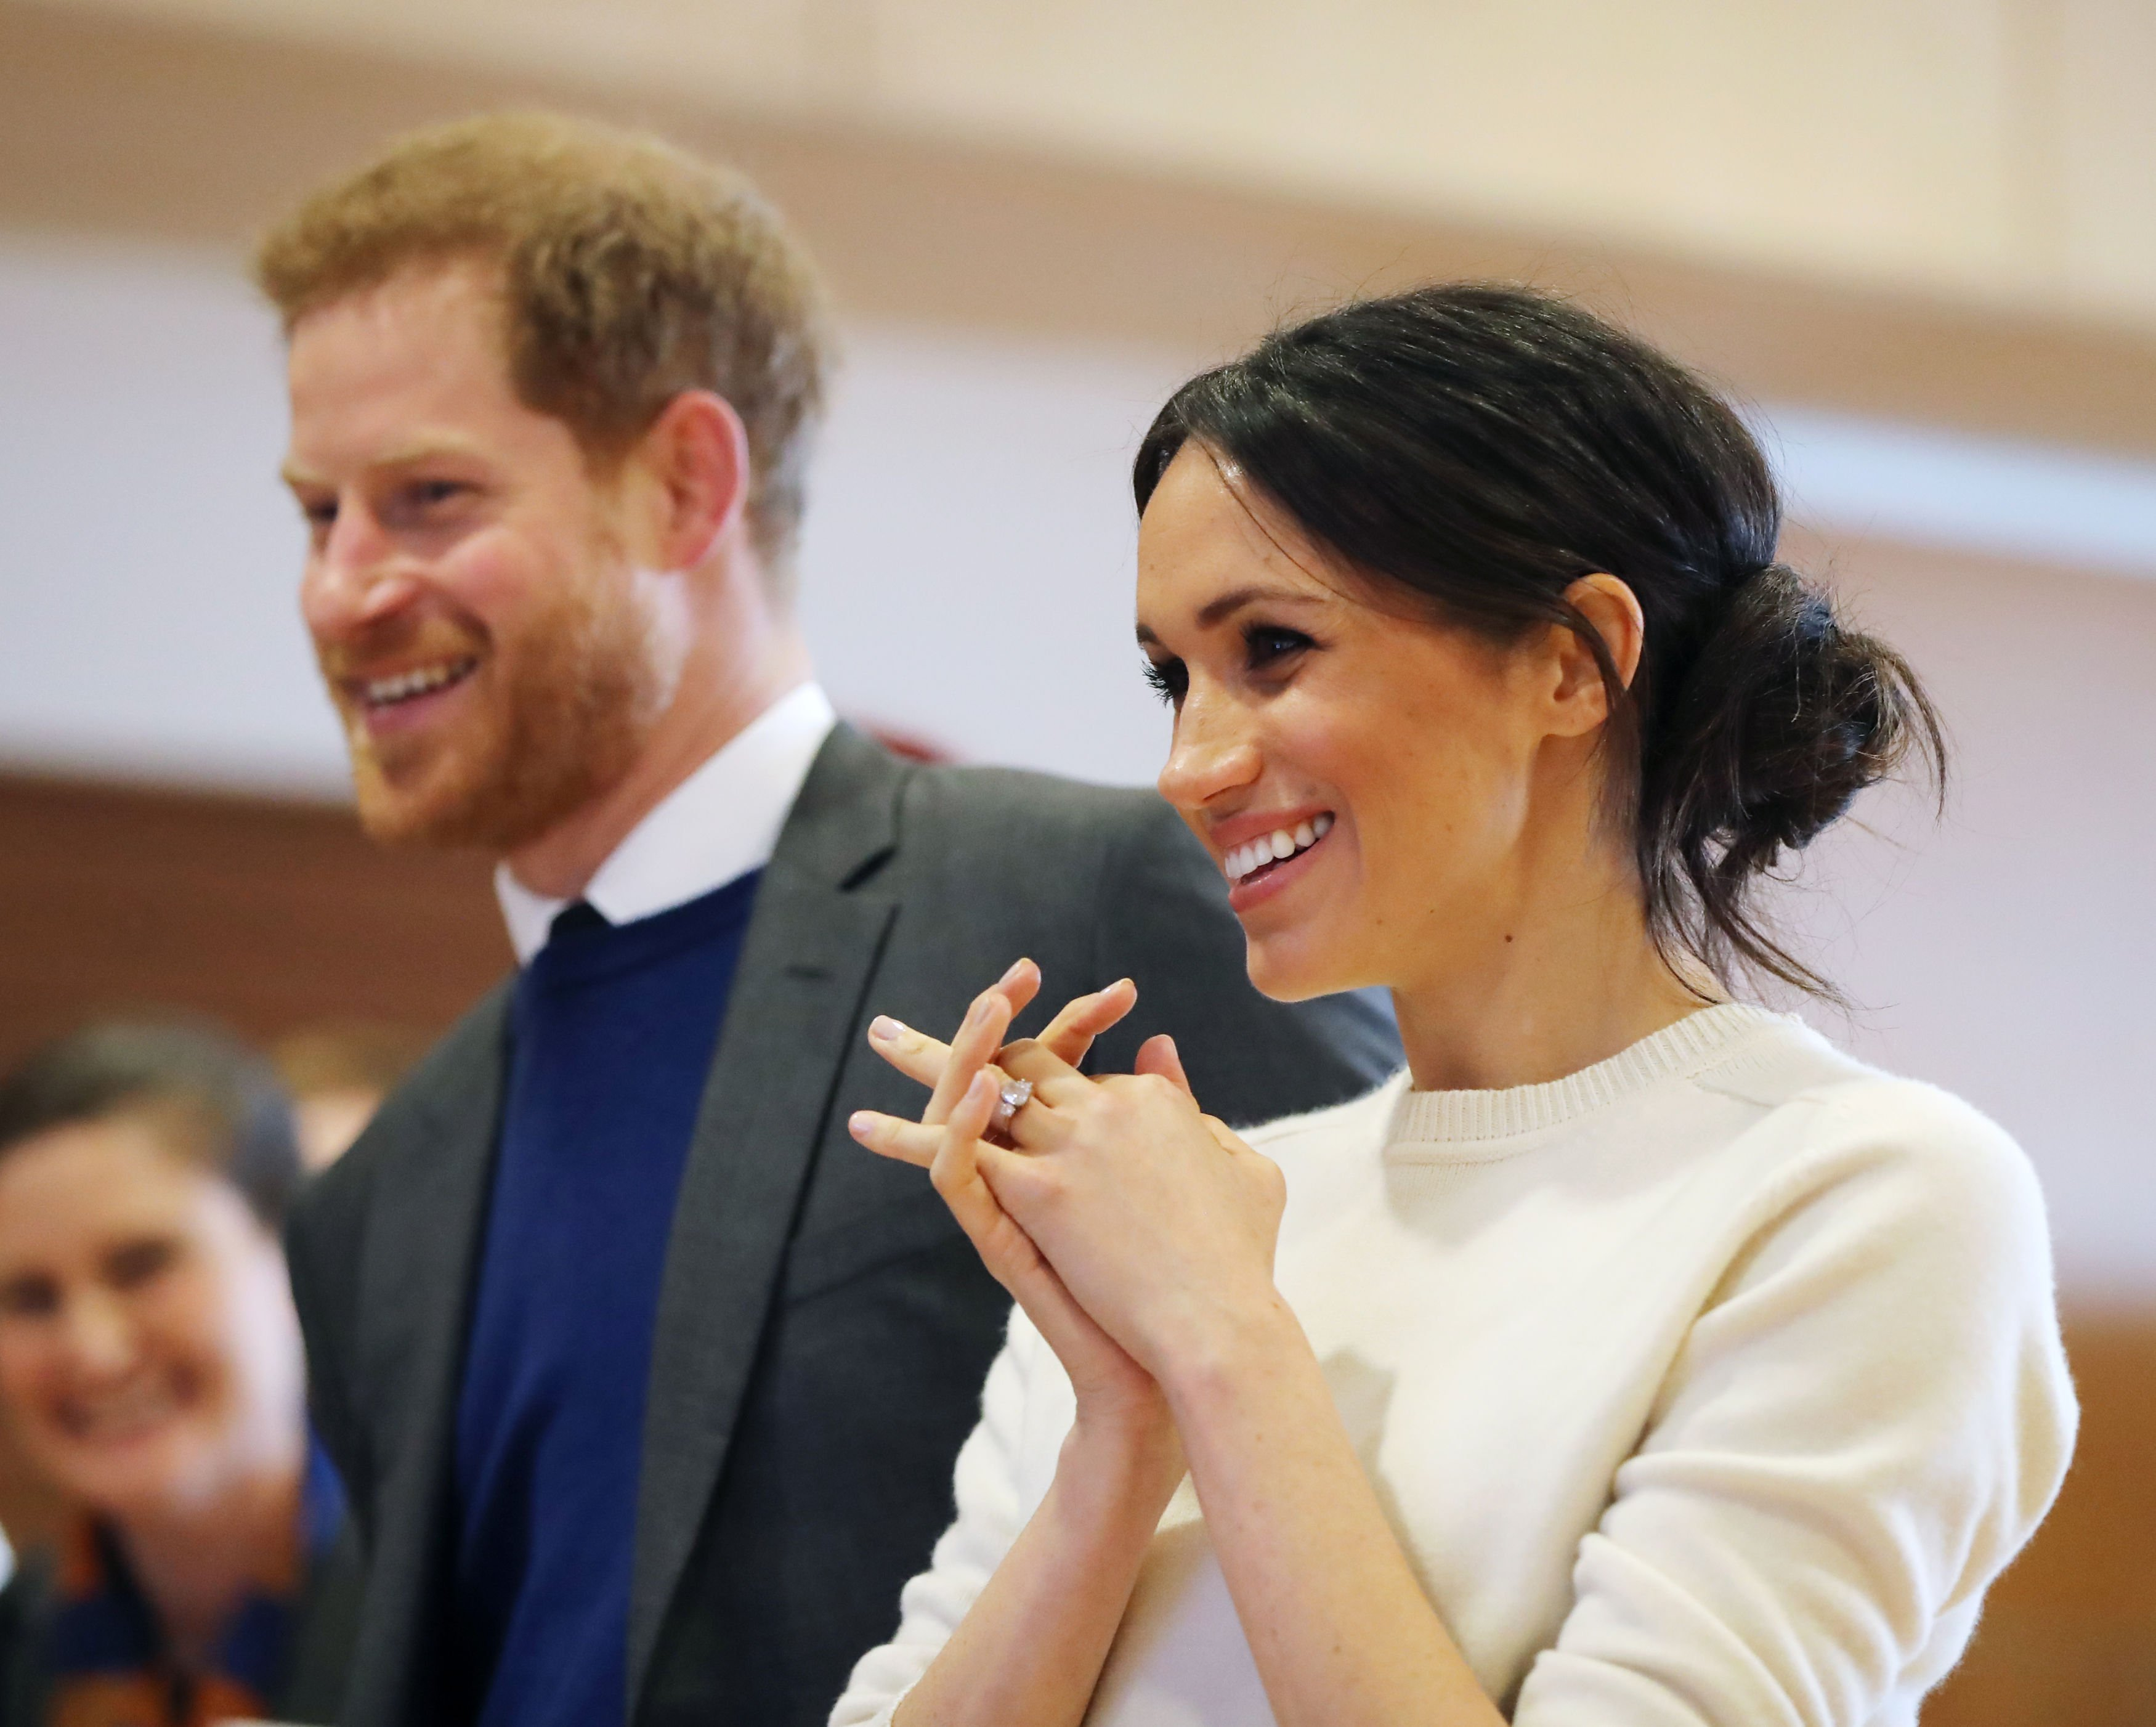 Image Credits: Getty Images / Niall Carson - Pool   Prince Harry and Meghan Markle during a visit to Catalyst Inc science park in Belfast where they met some of Northern Ireland's brightest young entrepreneurs on March 23, 2018 in Belfast, Nothern Ireland.